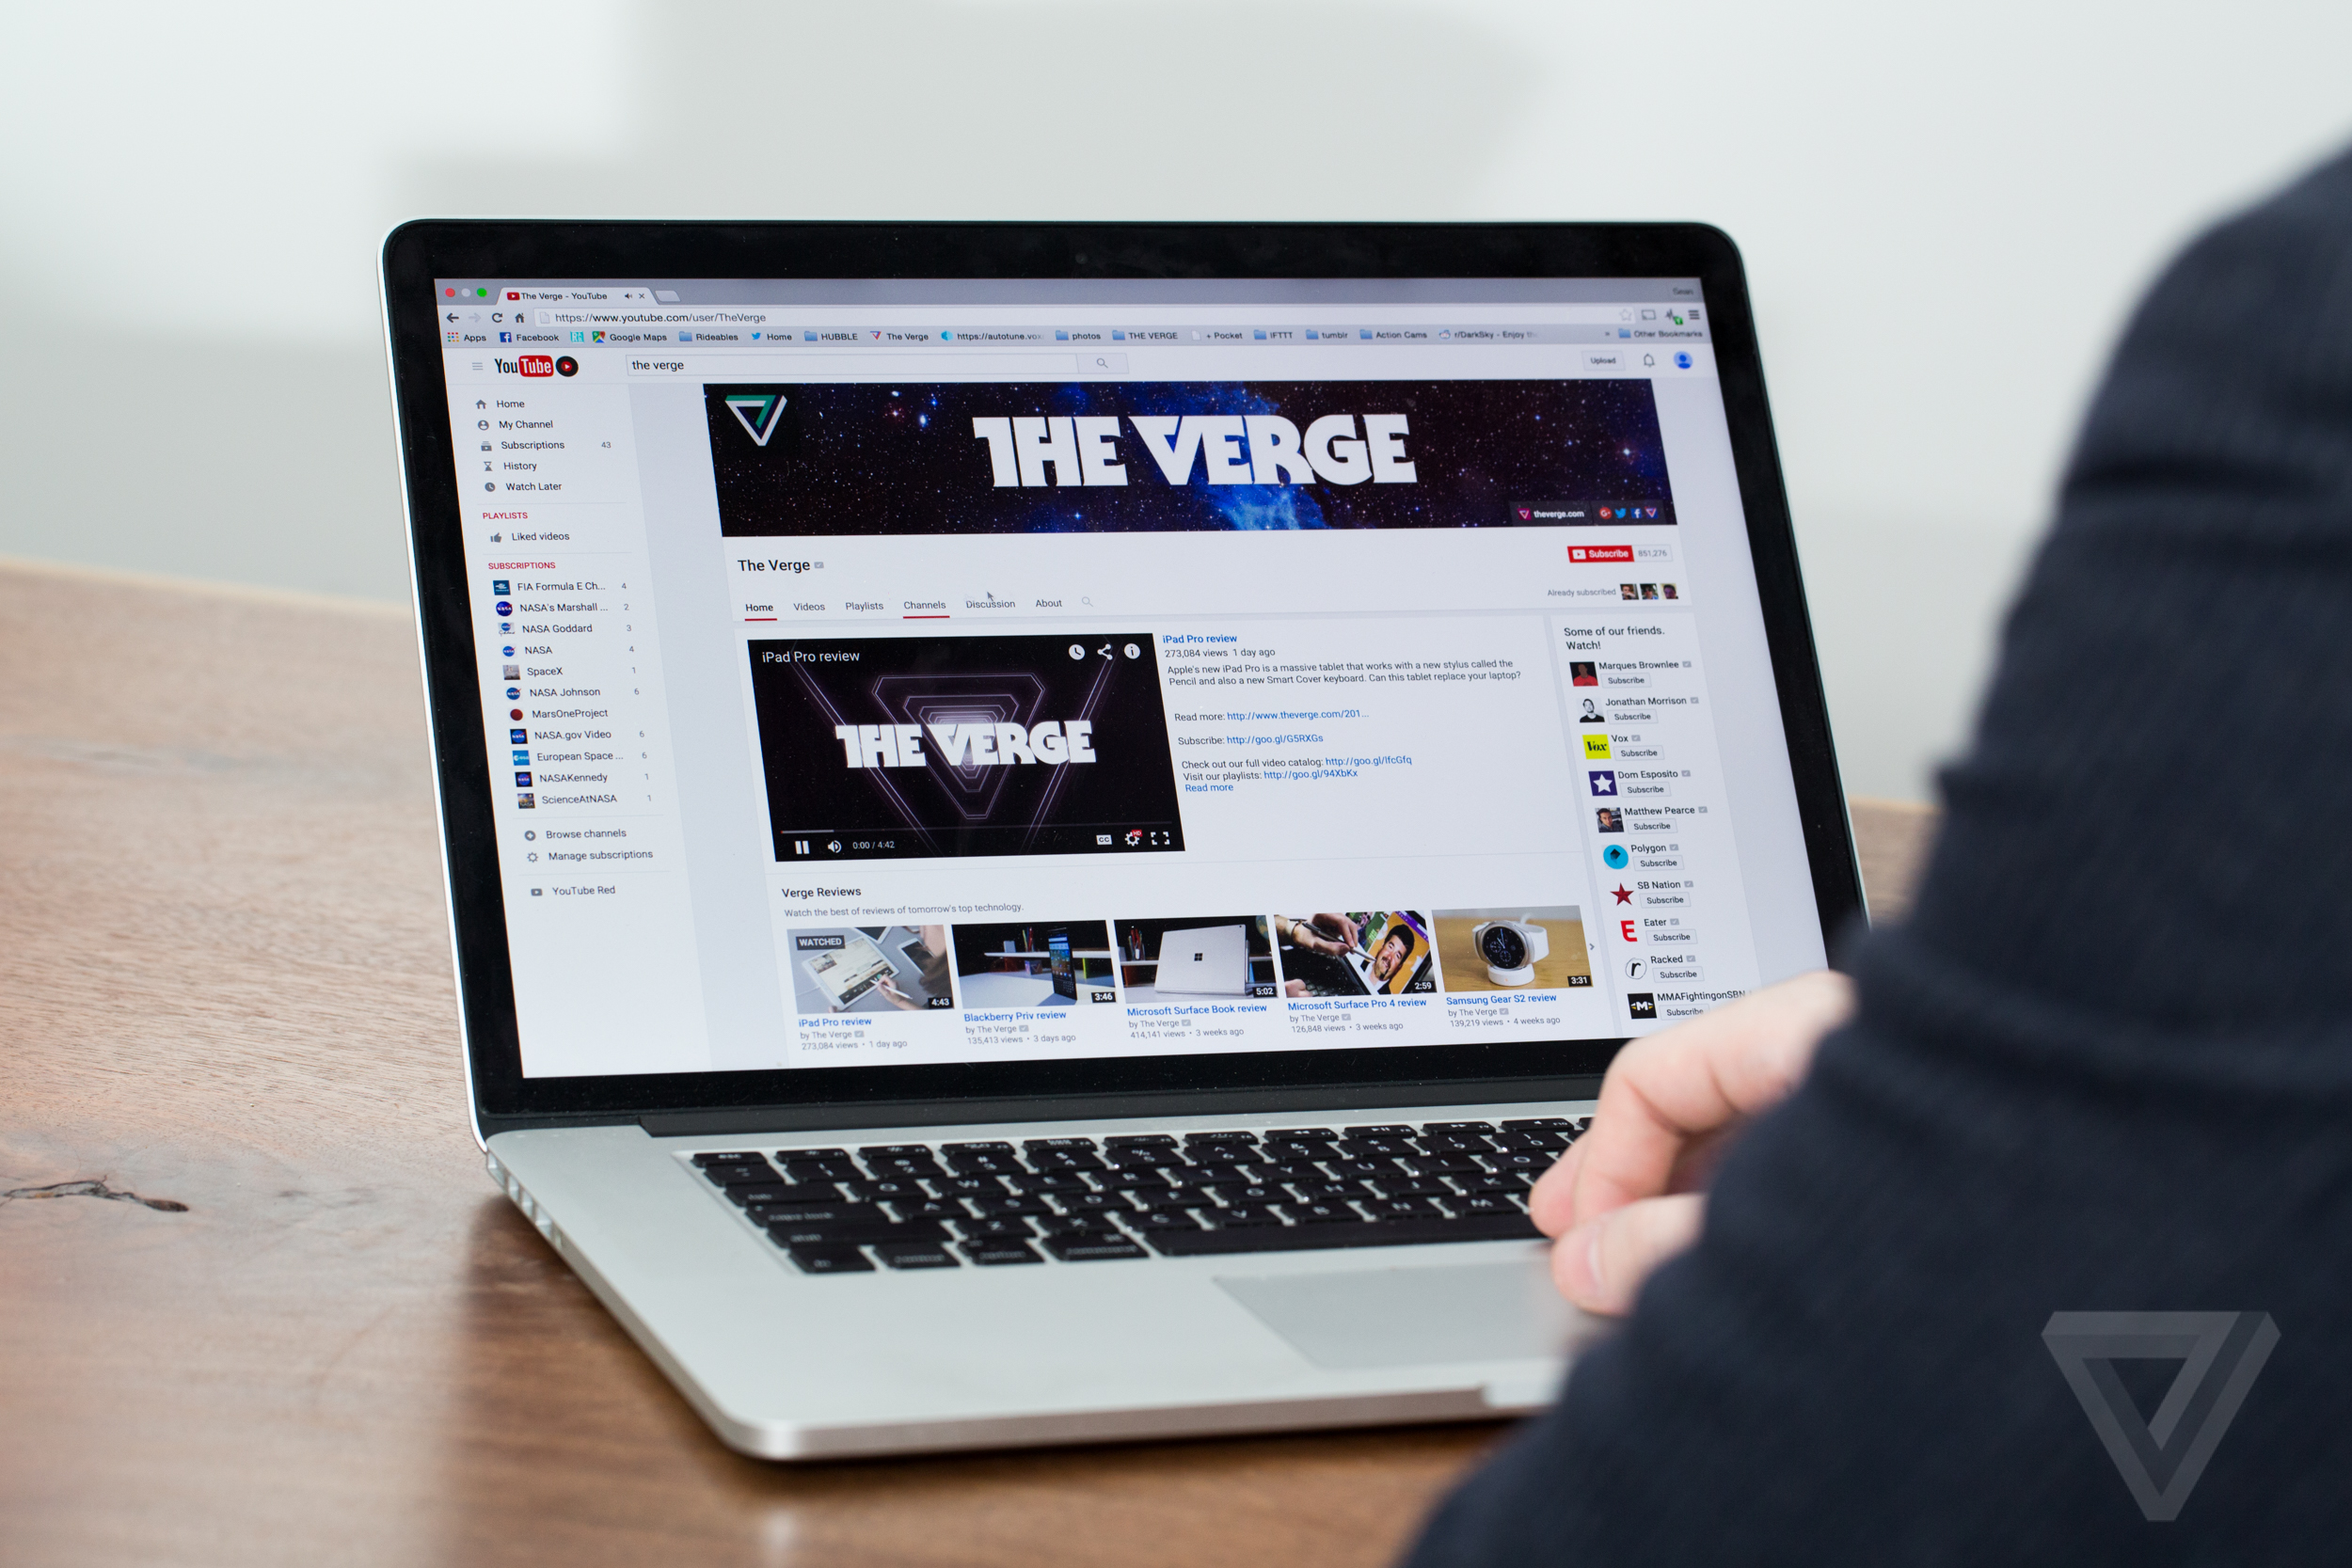 YouTube users may see 'noticeable decrease' in subscriber